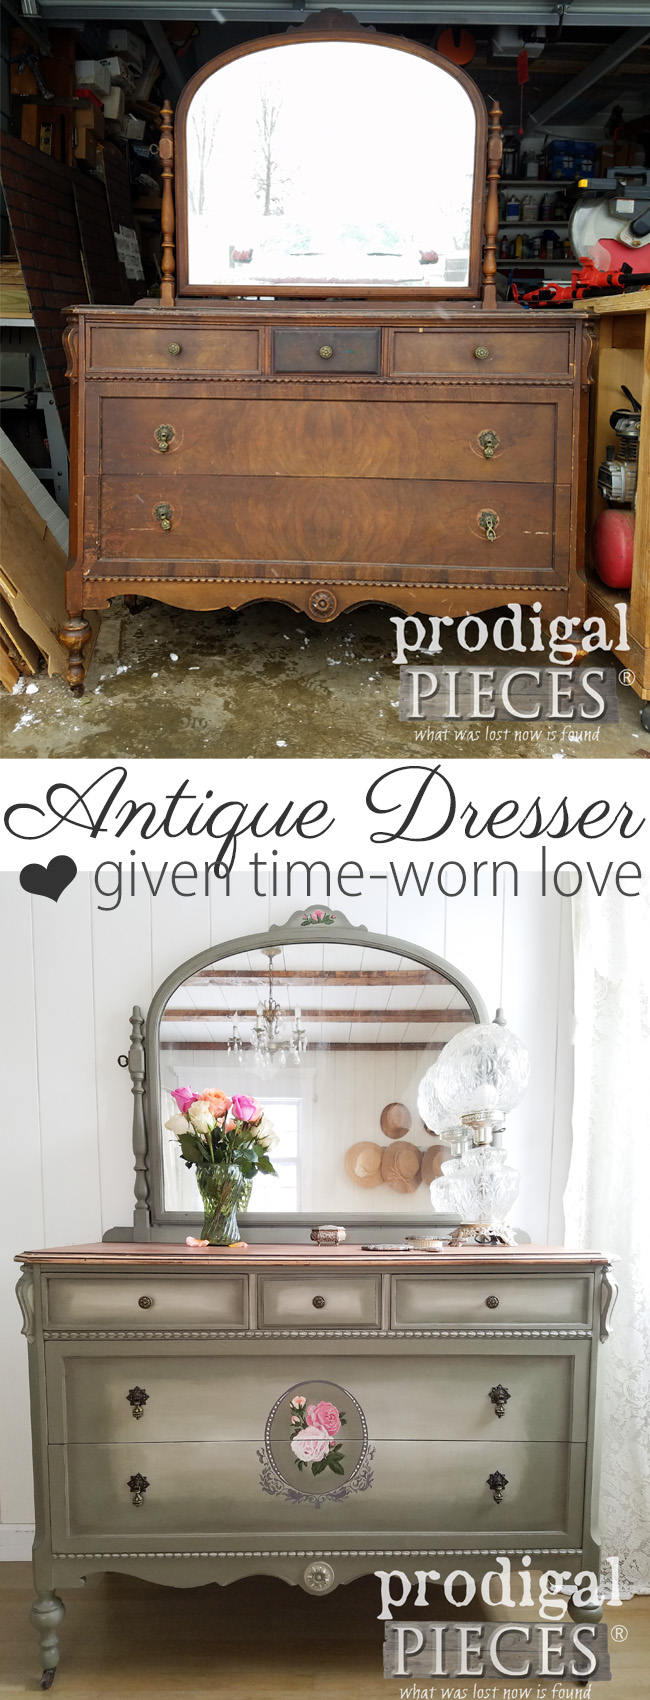 A tired and worn antique dresser gets the new look of a lifetime. Larissa of Prodigal Pieces tackles the damage to bring it new life. Read the story at prodigalpieces.com